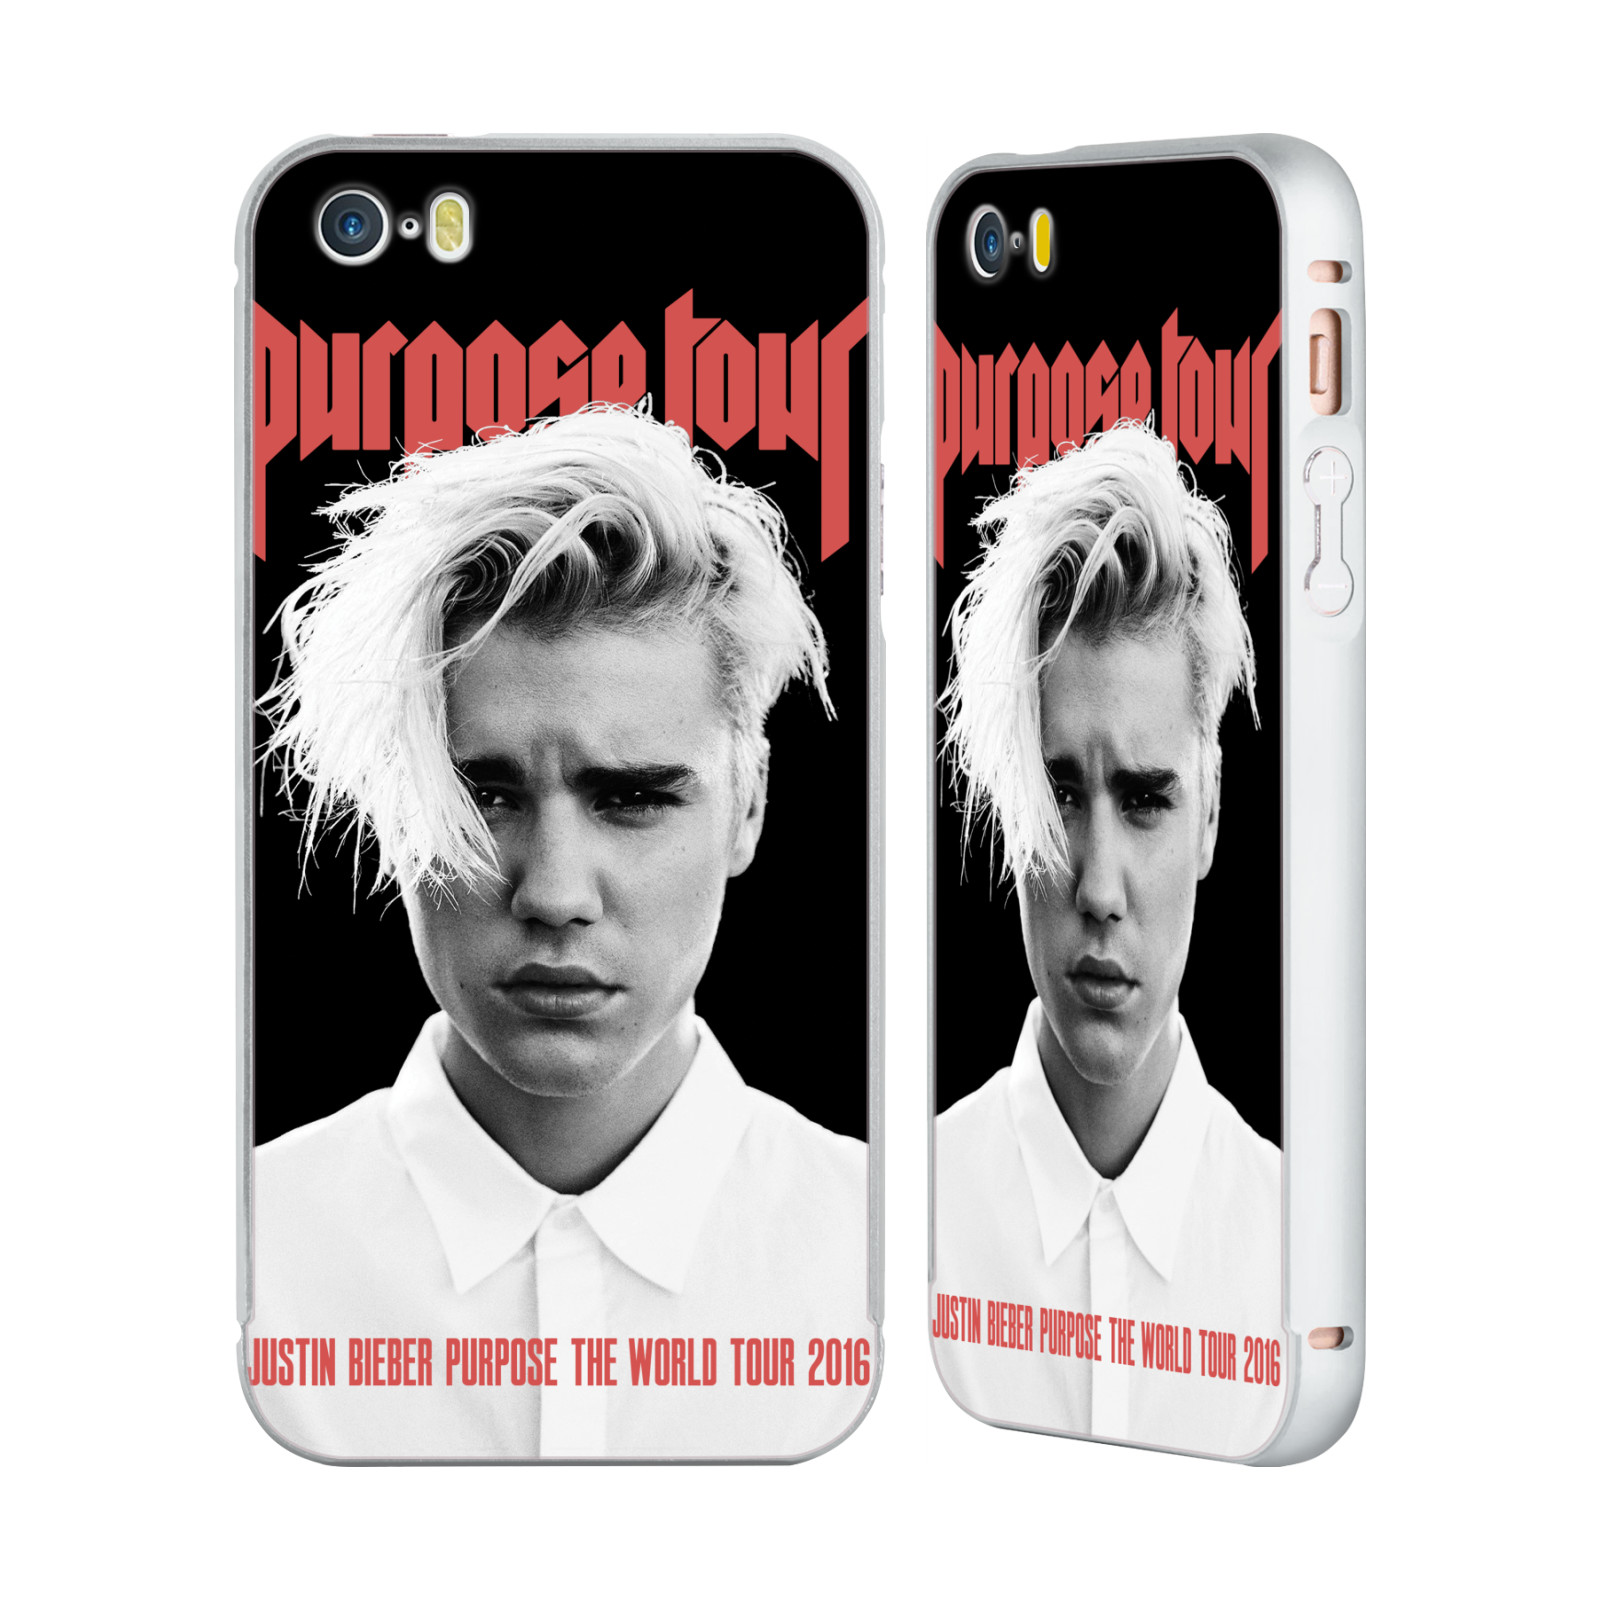 JUSTIN-BIEBER-TOUR-MERCHANDISE-SILVER-BUMPER-SLIDER-CASE-FOR-APPLE-iPHONE-PHONES